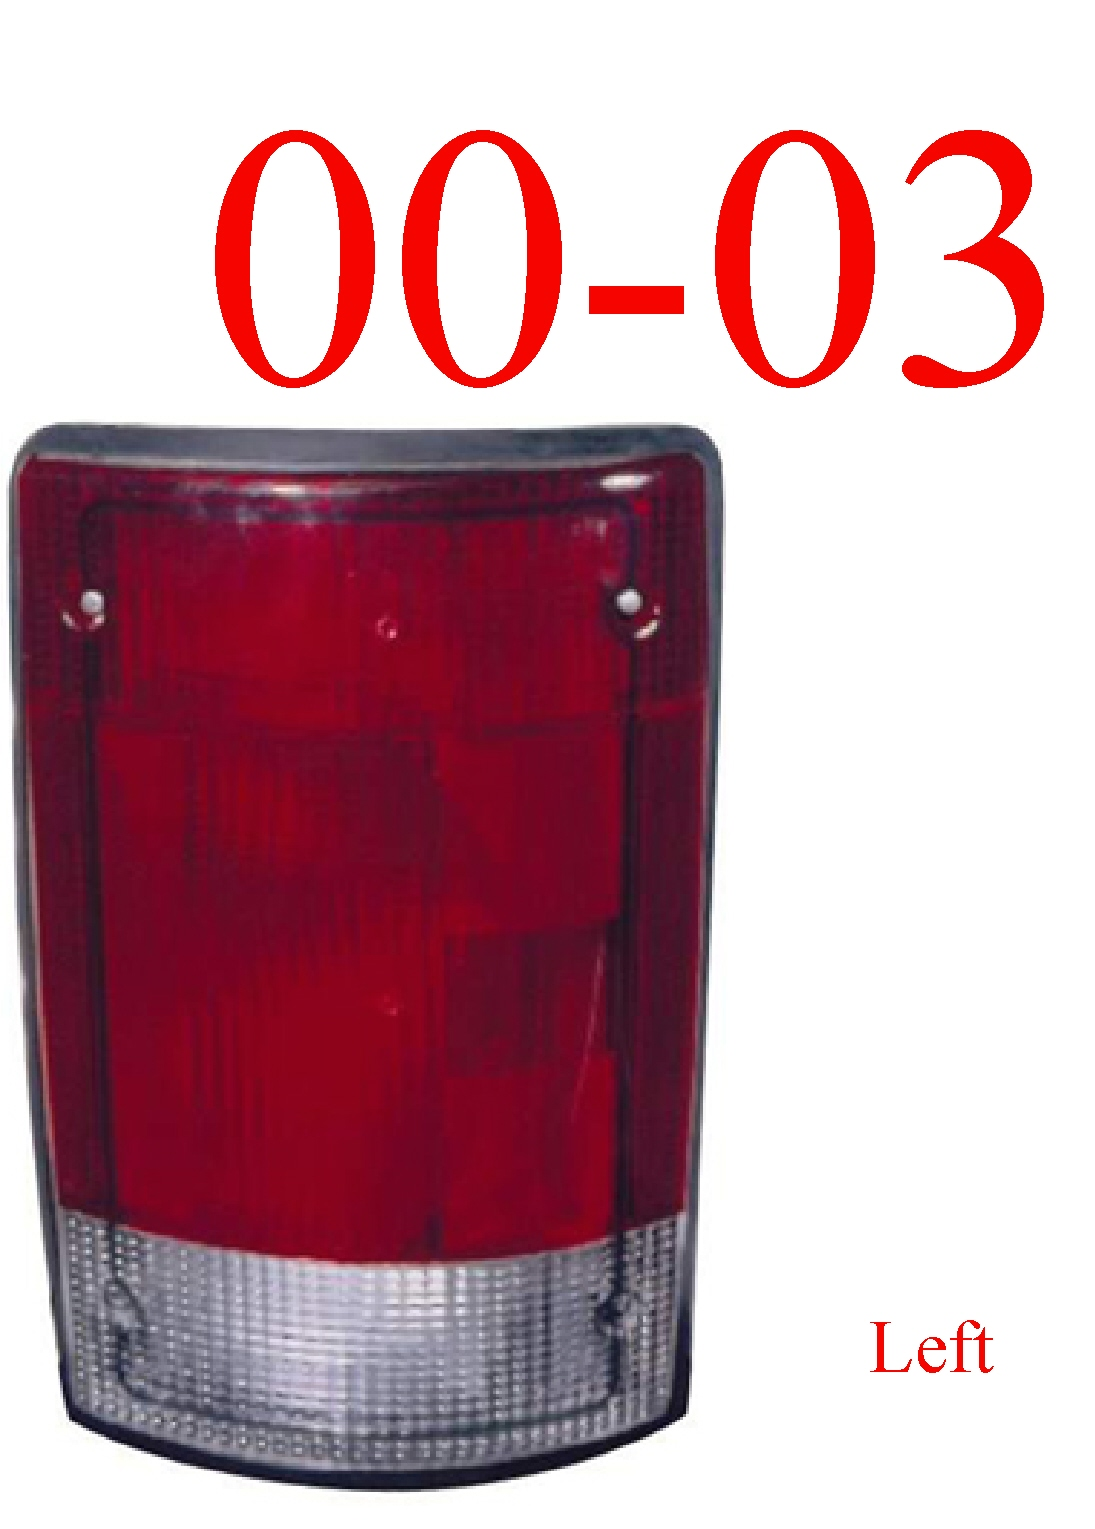 00-03 Ford Excursion Left Tail Light Assembly